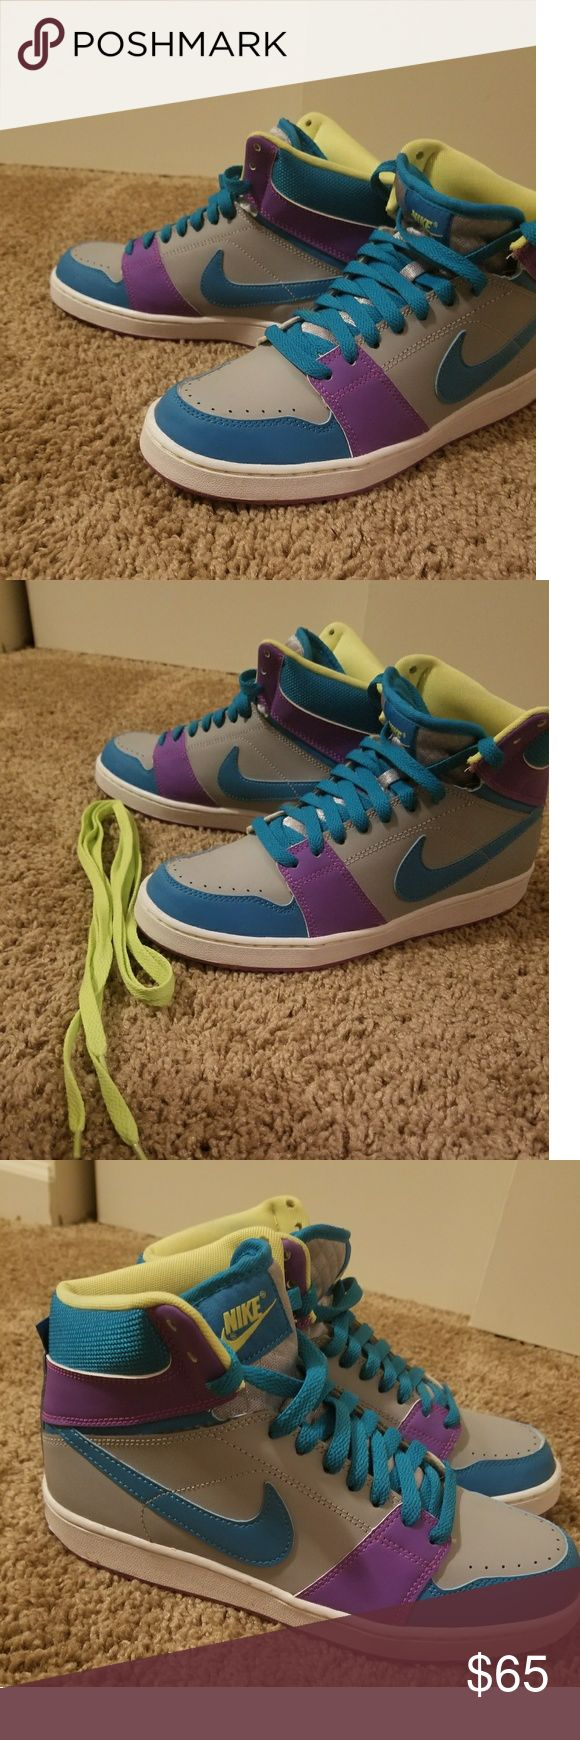 💥JUST IN💥 Nike Shoes Size 9 Very comfortable  Like New- Worn 2 or 3 times Grey, Blue, Purple, Neon Green Comes with extra pair of Neon shoe laces Nike Shoes Sneakers